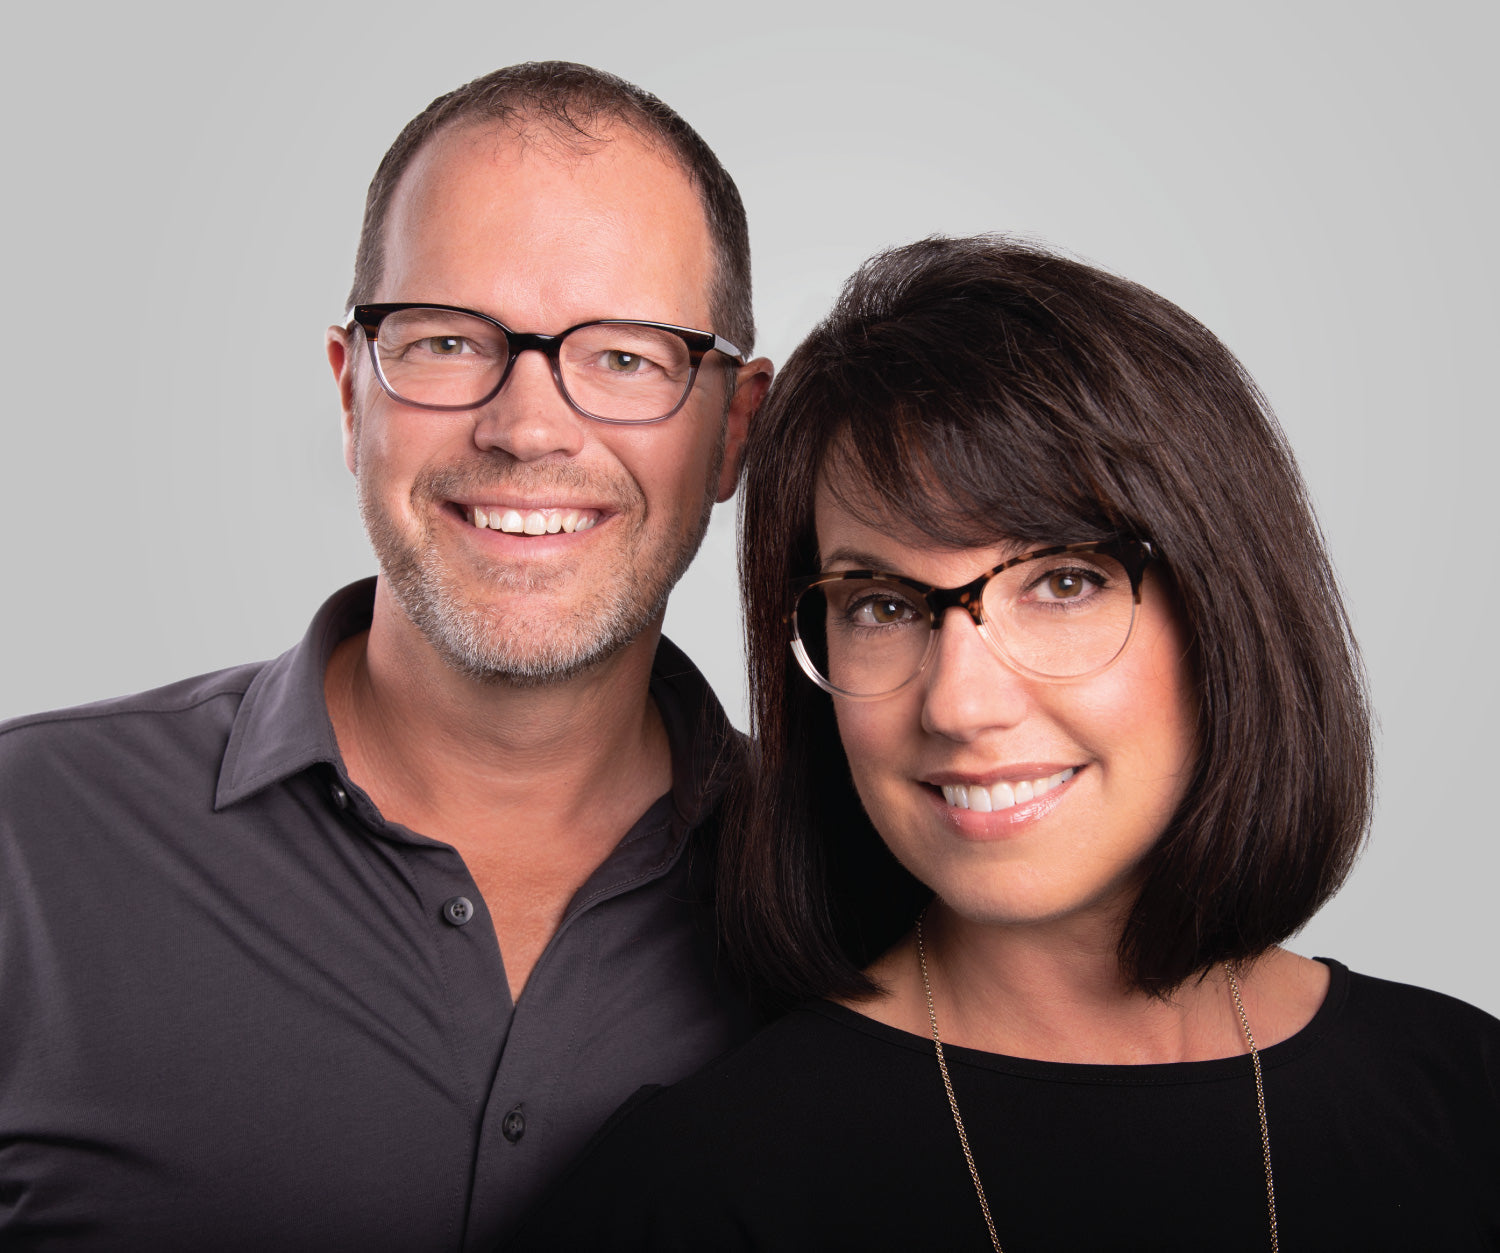 Co-Founders Jim Schneider and Amy Schneider